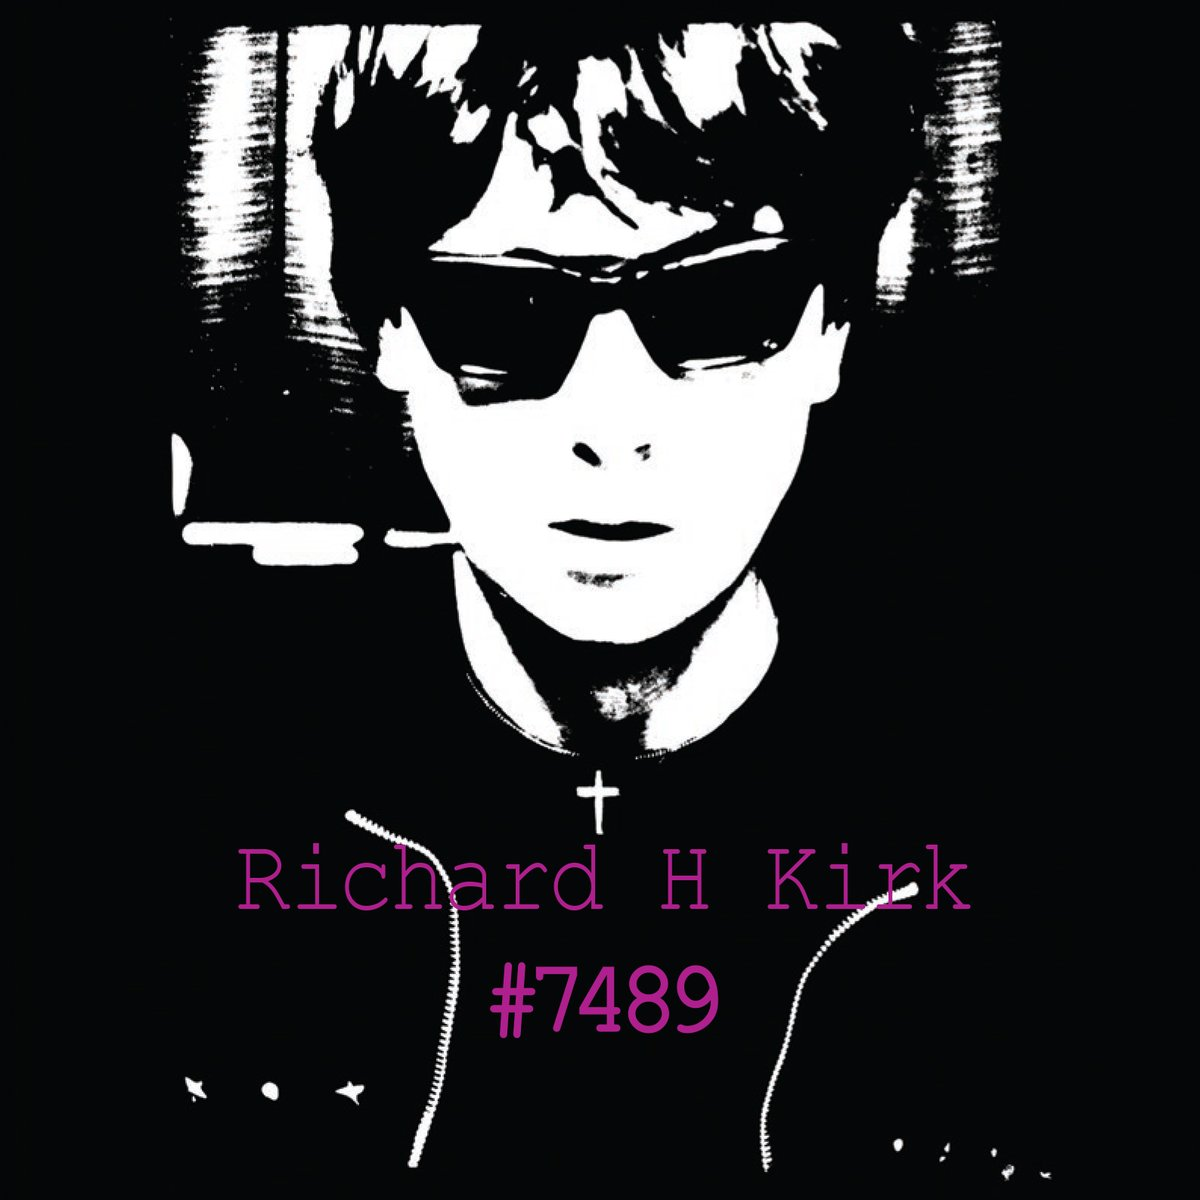 Richard H. Kirk -  #7489 (Collected Works 1974 - 1989) 8 CD Box Set